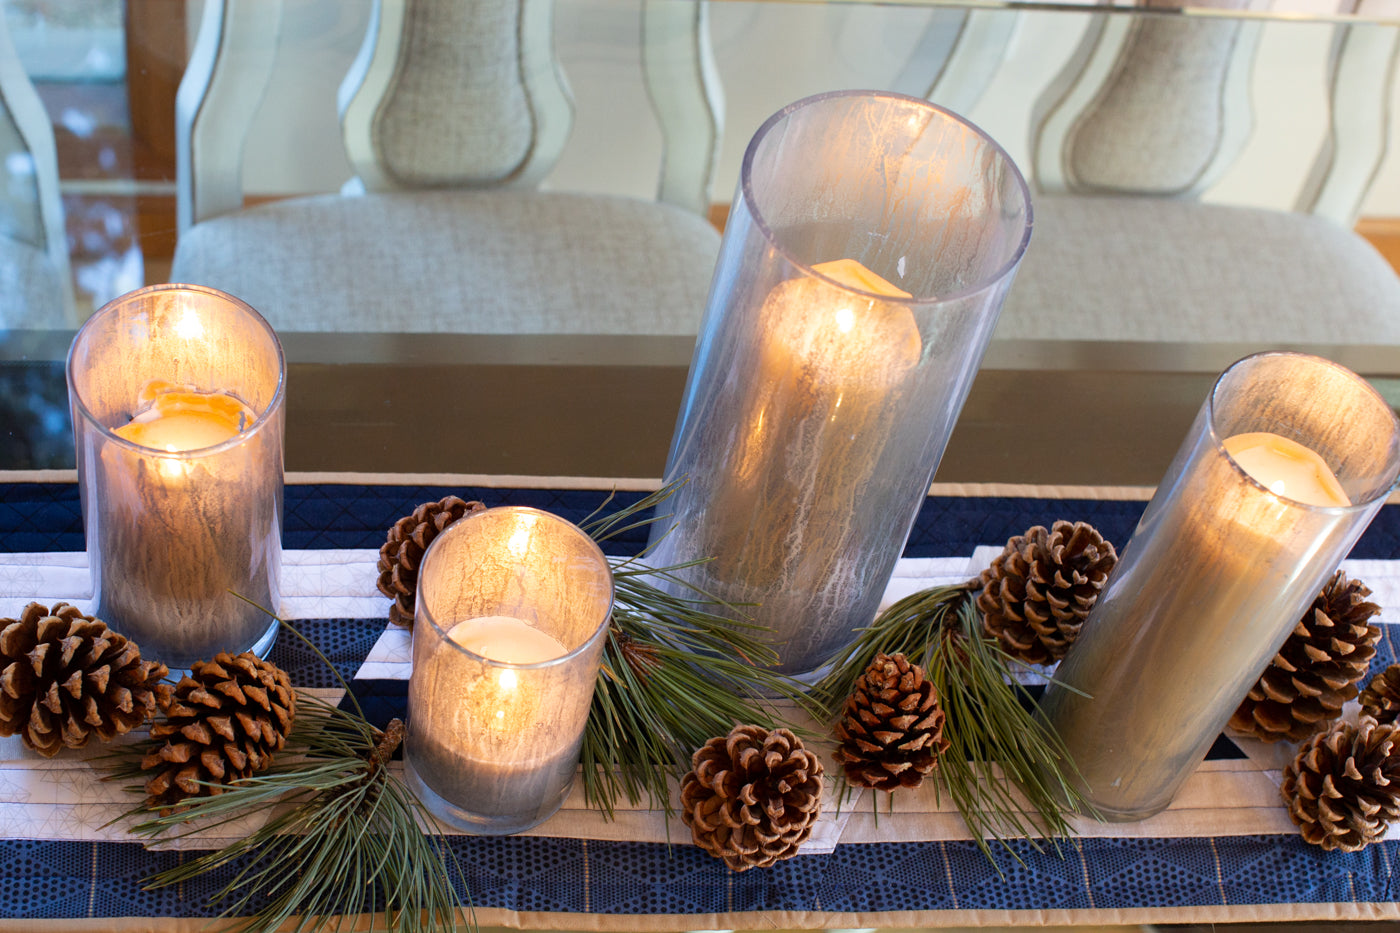 Photograph taken looking down at the kitchen table with a table runner.  The table runner is navy blue, white, tan and a deep blue.  There are candles lit in tall glass candle holders with pinecones and pine needle bunches at the base of the candles to create a holiday atmosphere.